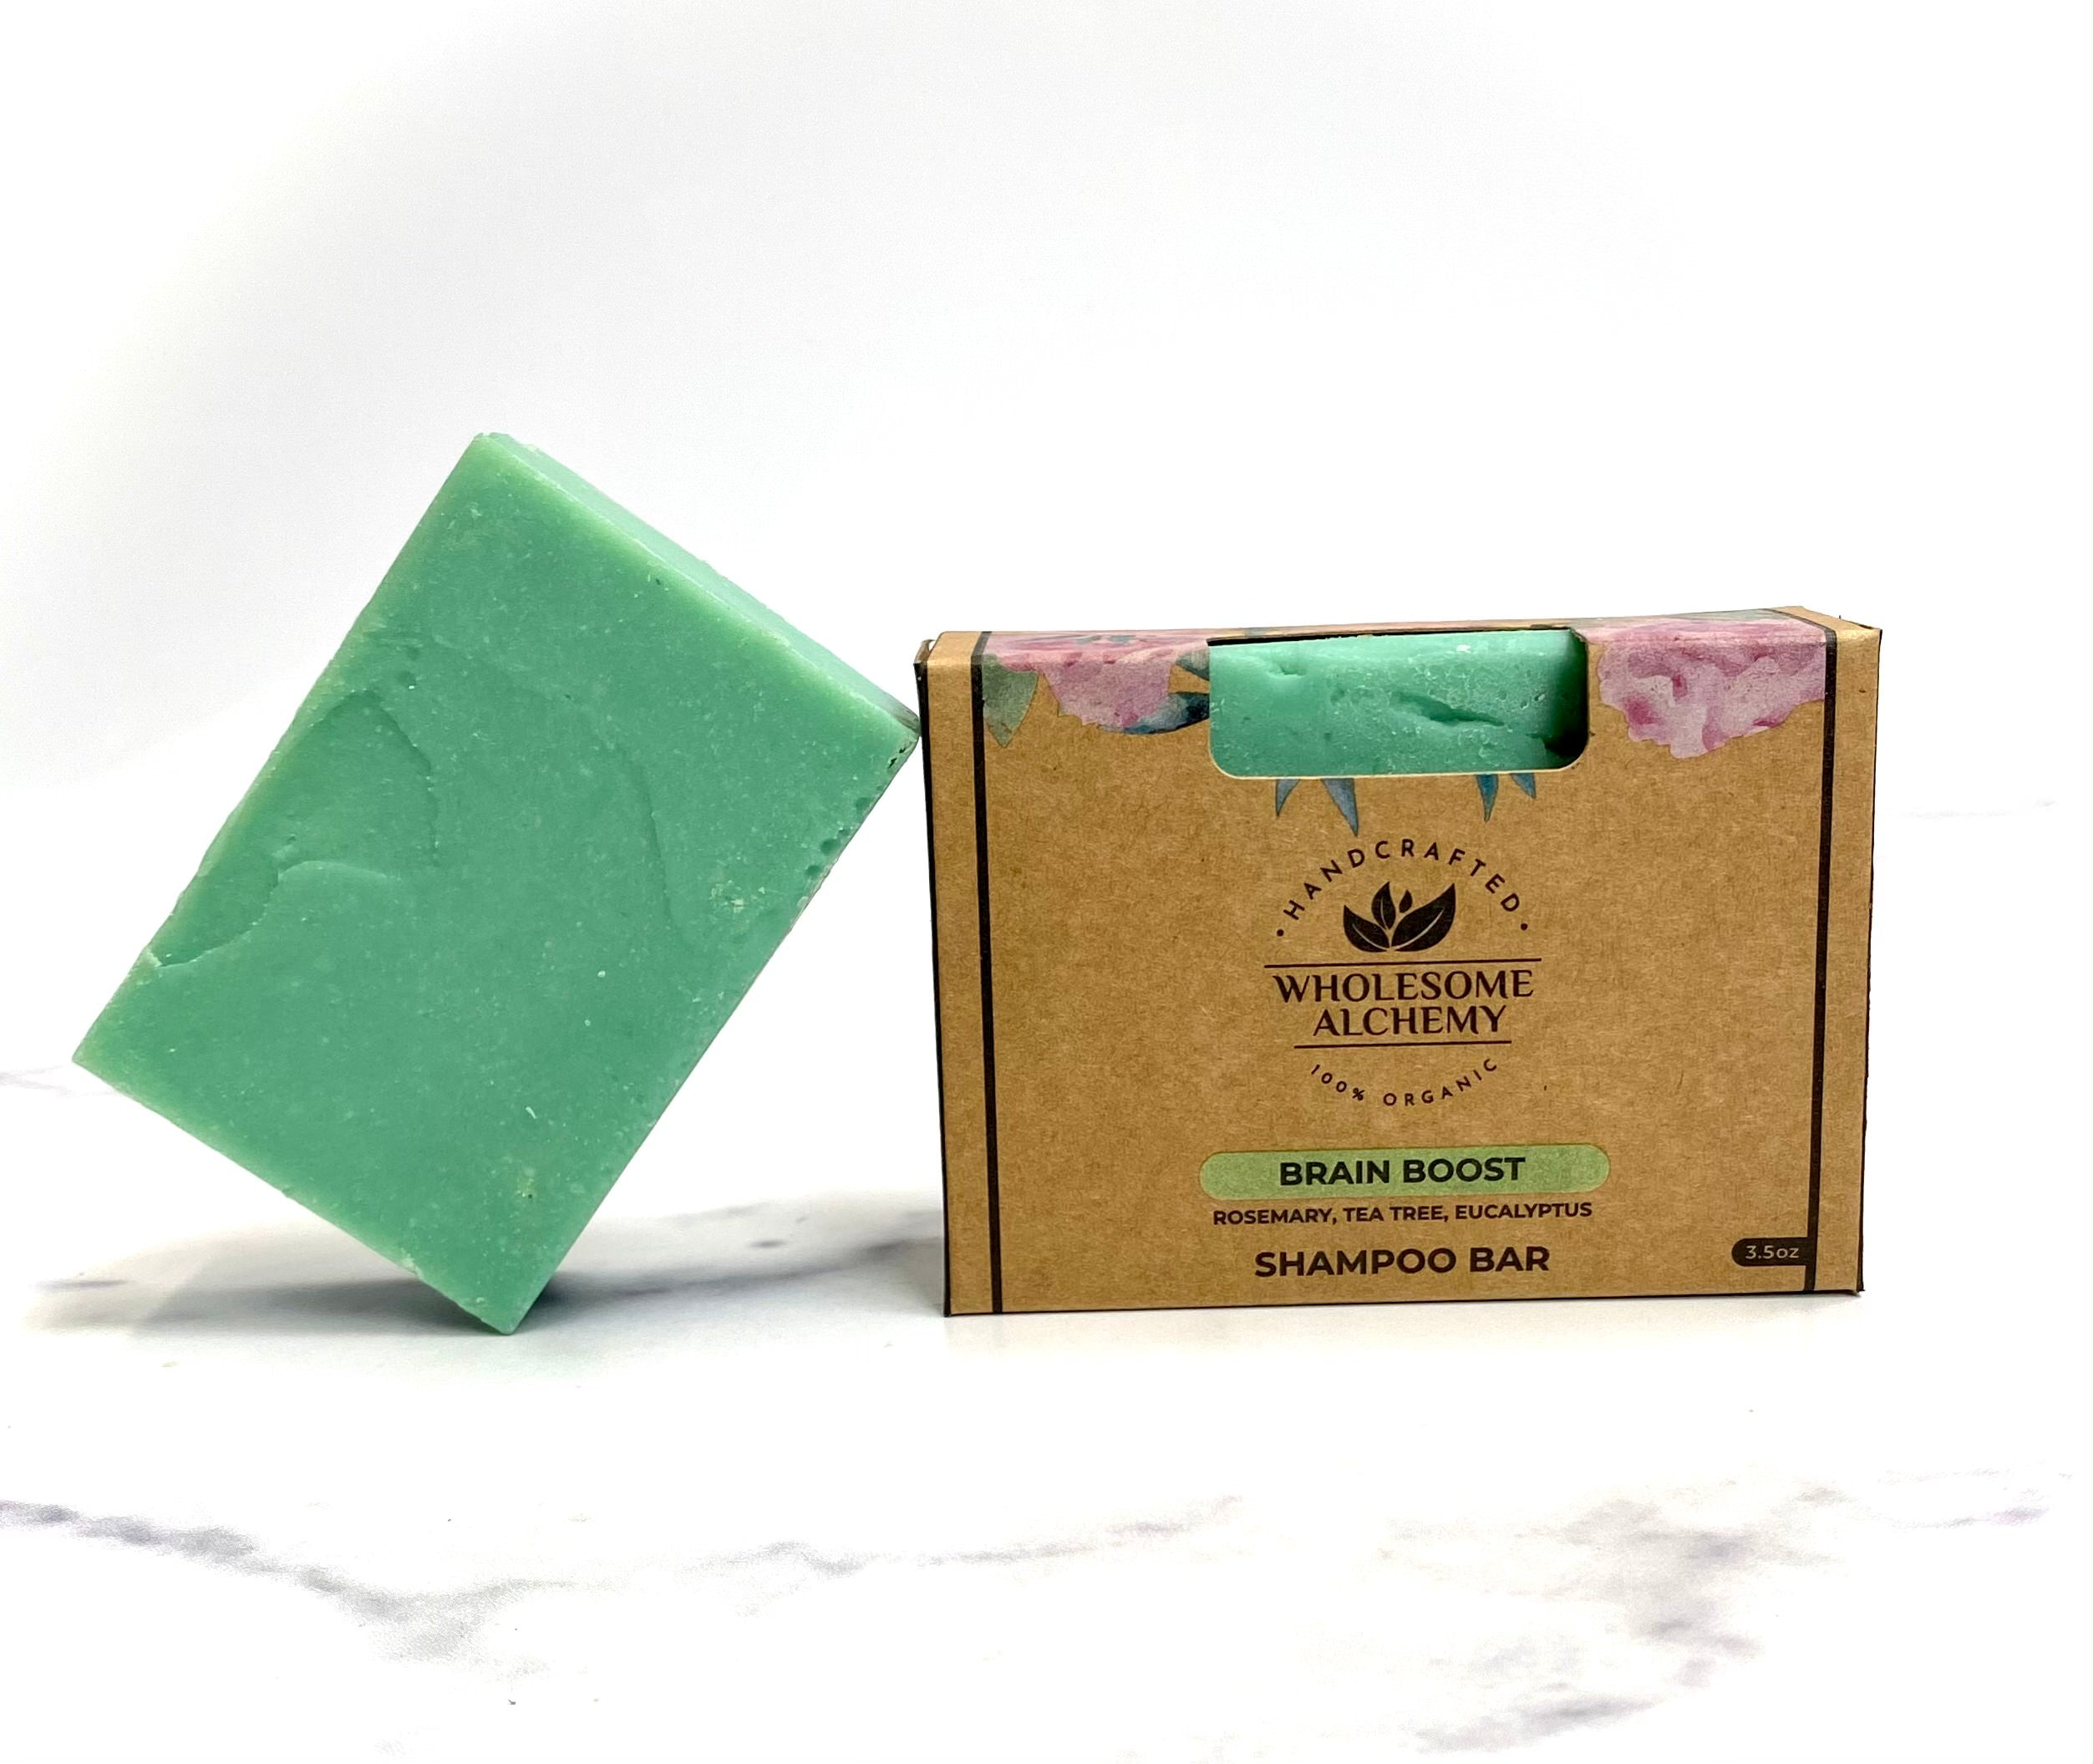 Vegan Organic Essential Oil Shampoo Bar (Brain Boost: Rosemary, Tea Tree, Eucalyptus)